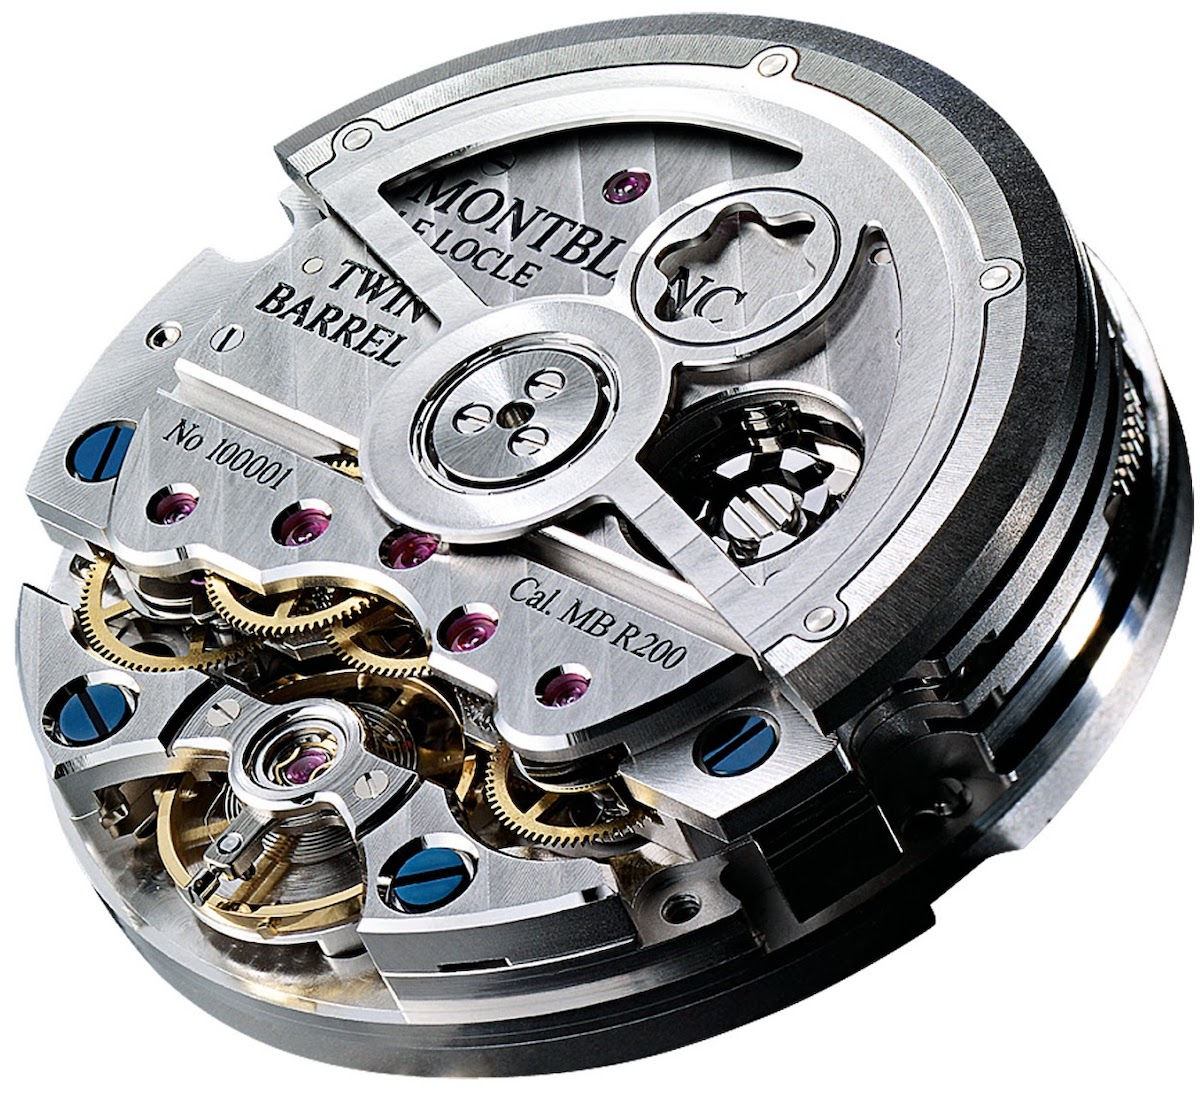 montblanc_manufacture_calibre_mb_r200.jpg